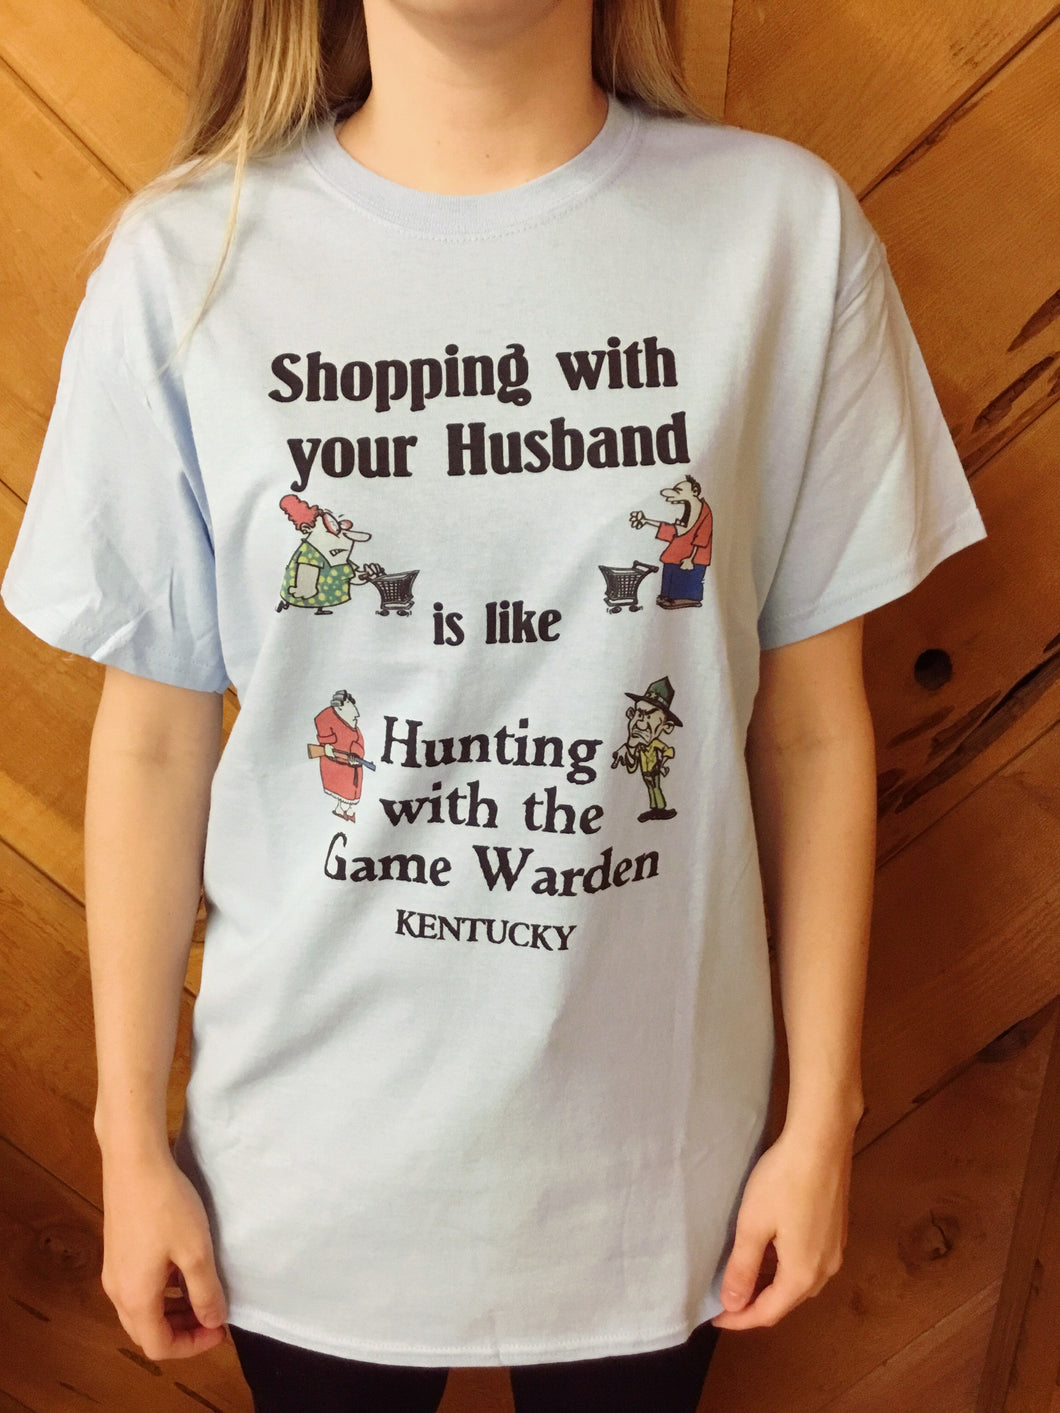 Shopping with your Husband T-shirts